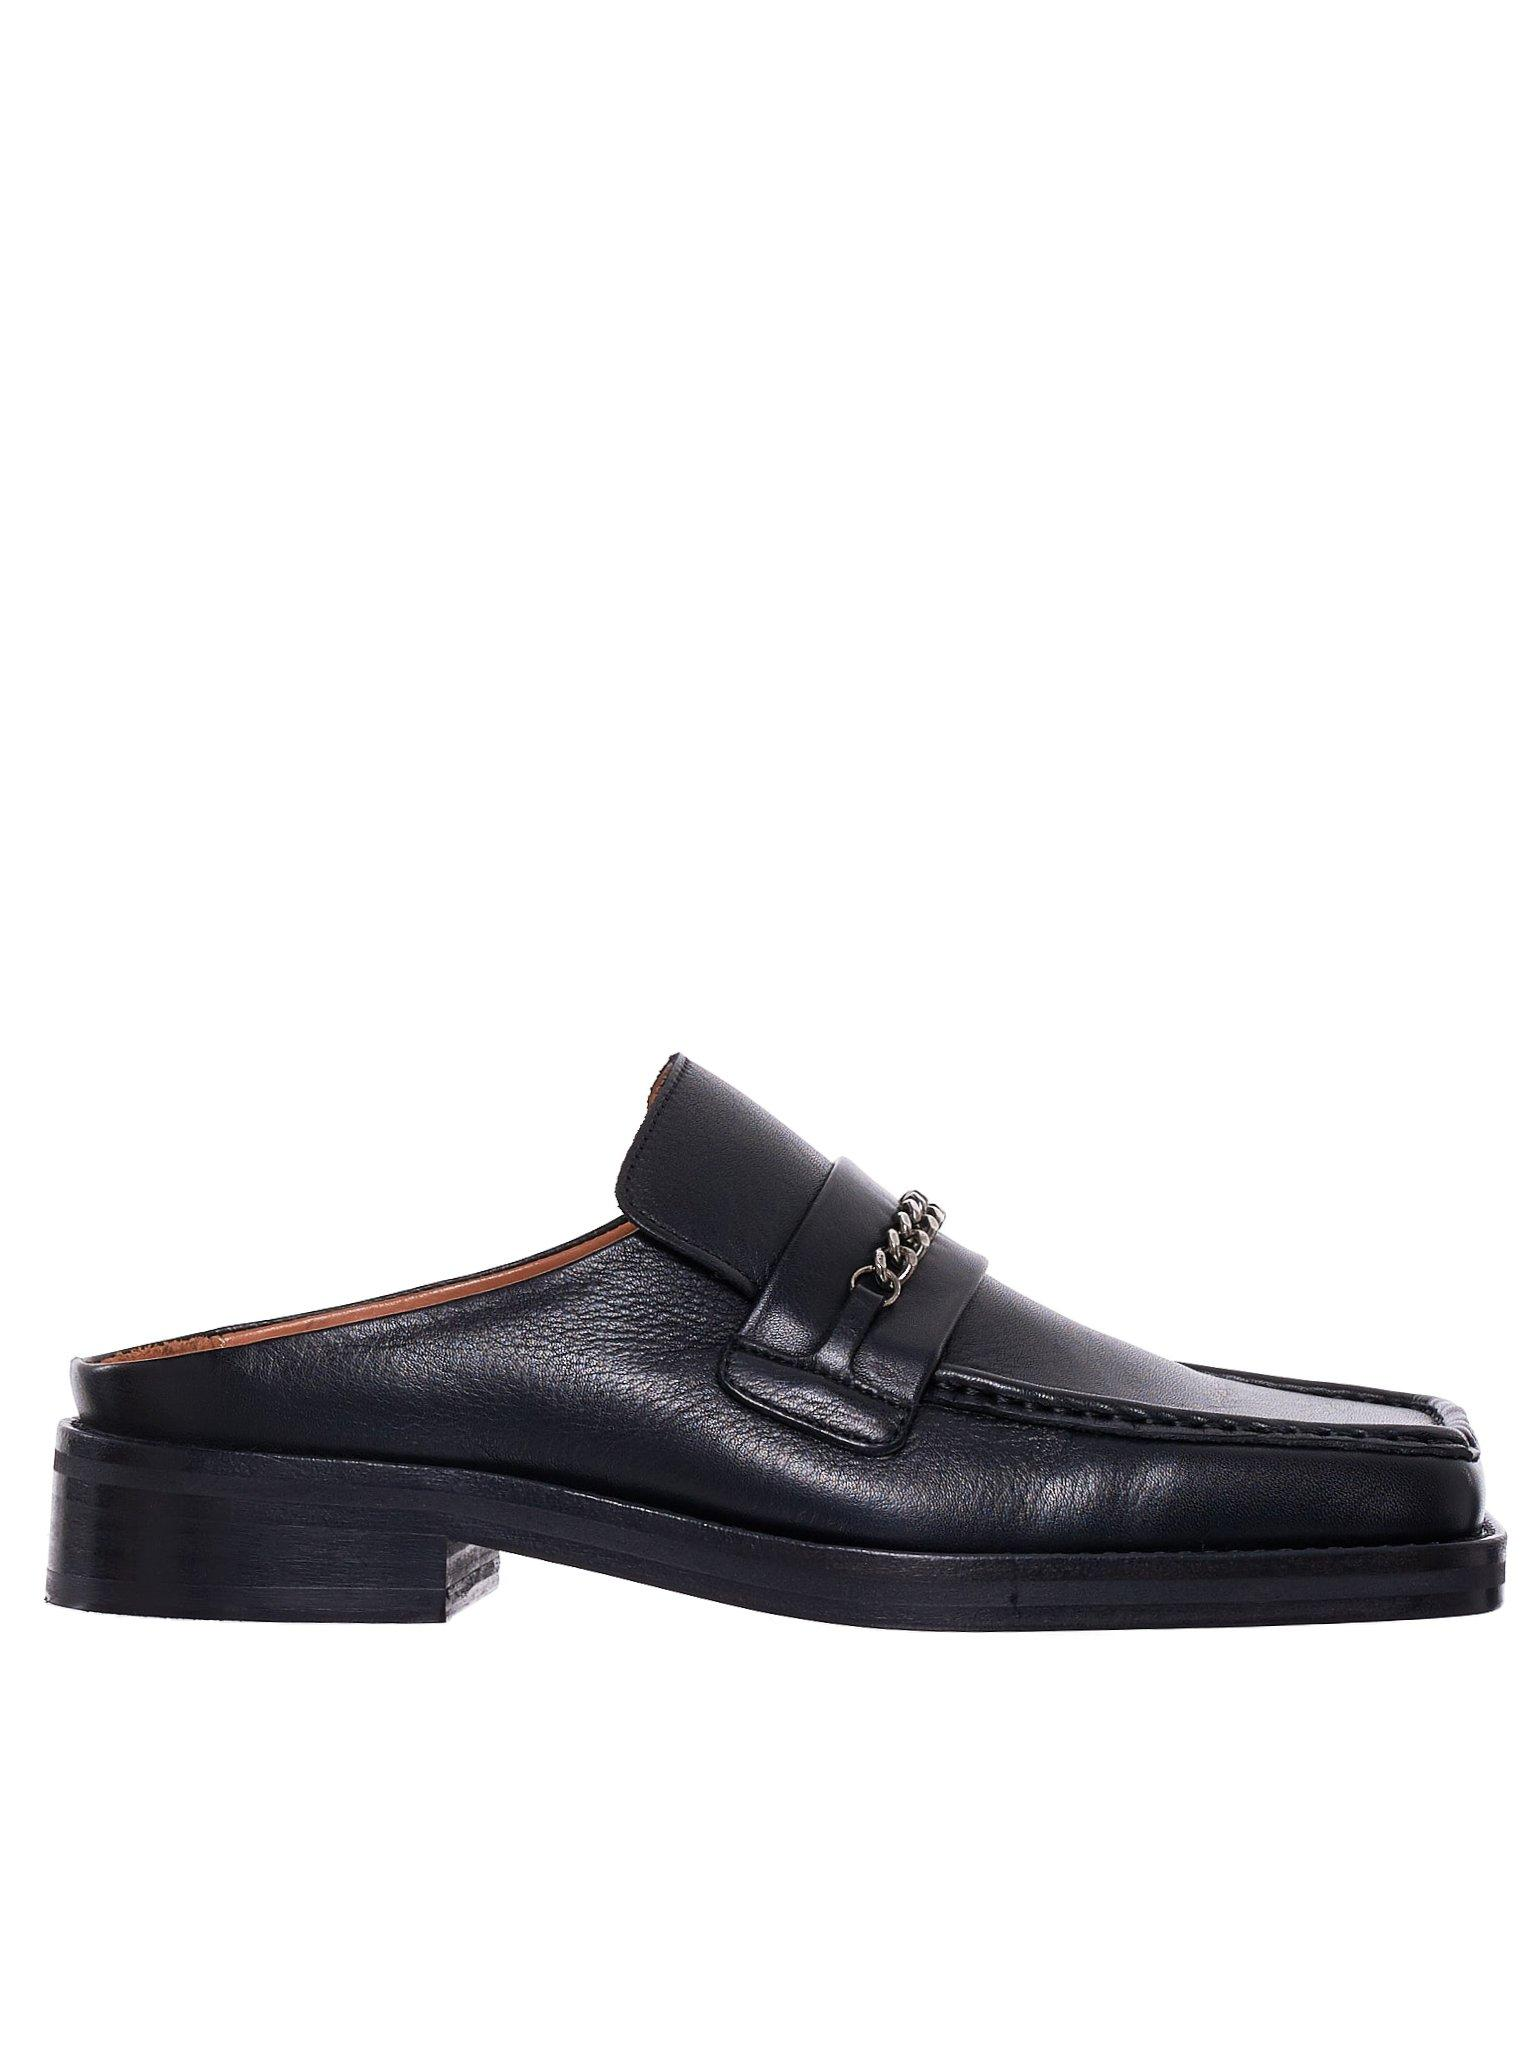 performance sportswear classic fit special section Martine Rose Leather Open Back Loafers in Black for Men - Save 36 ...